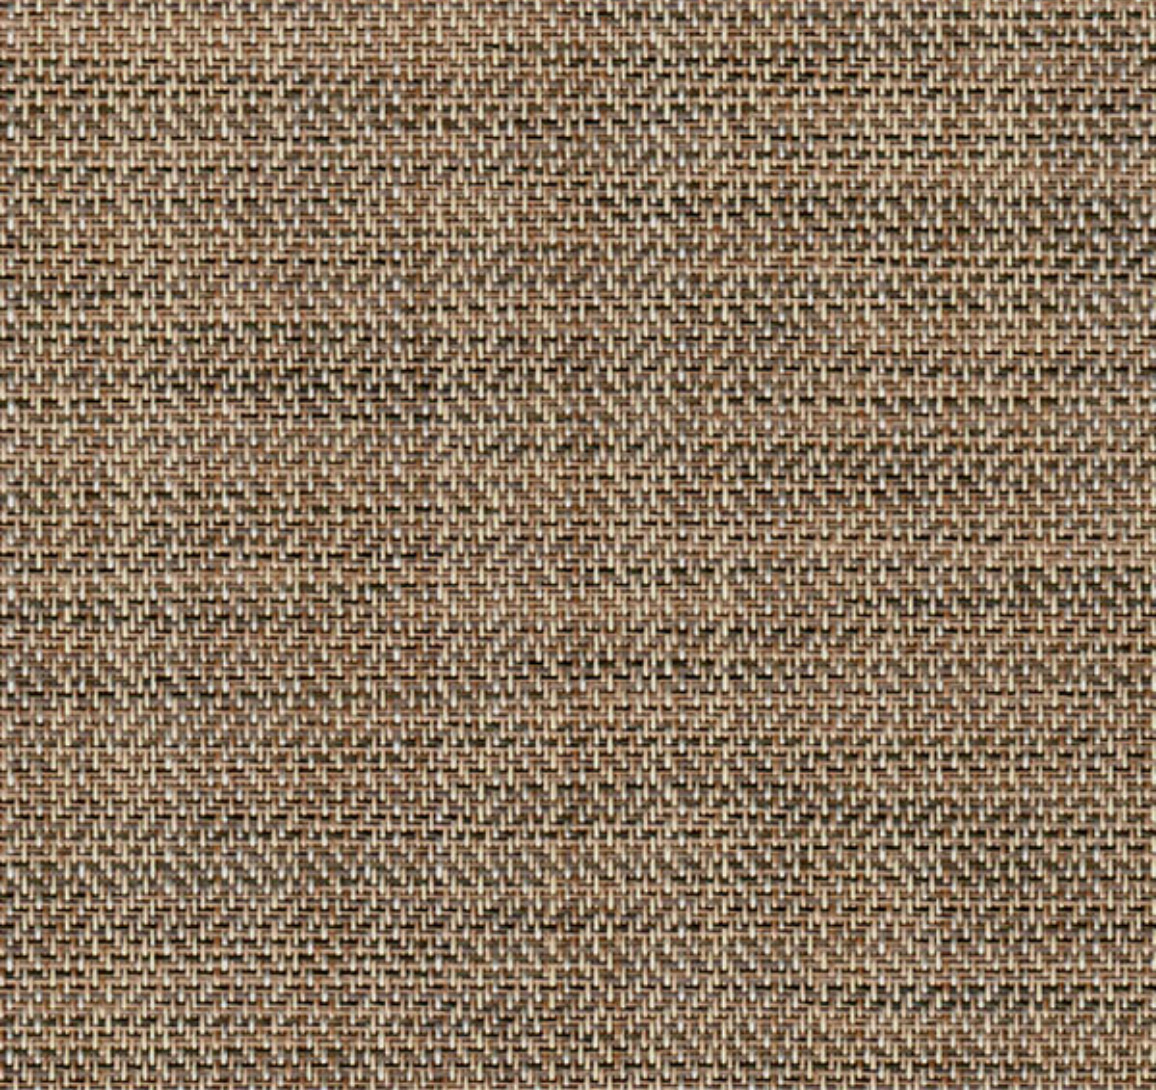 screenshot-2018-08-16-digital-fabric-samples-outdoor-patio-furniture-sling-fabric.jpg